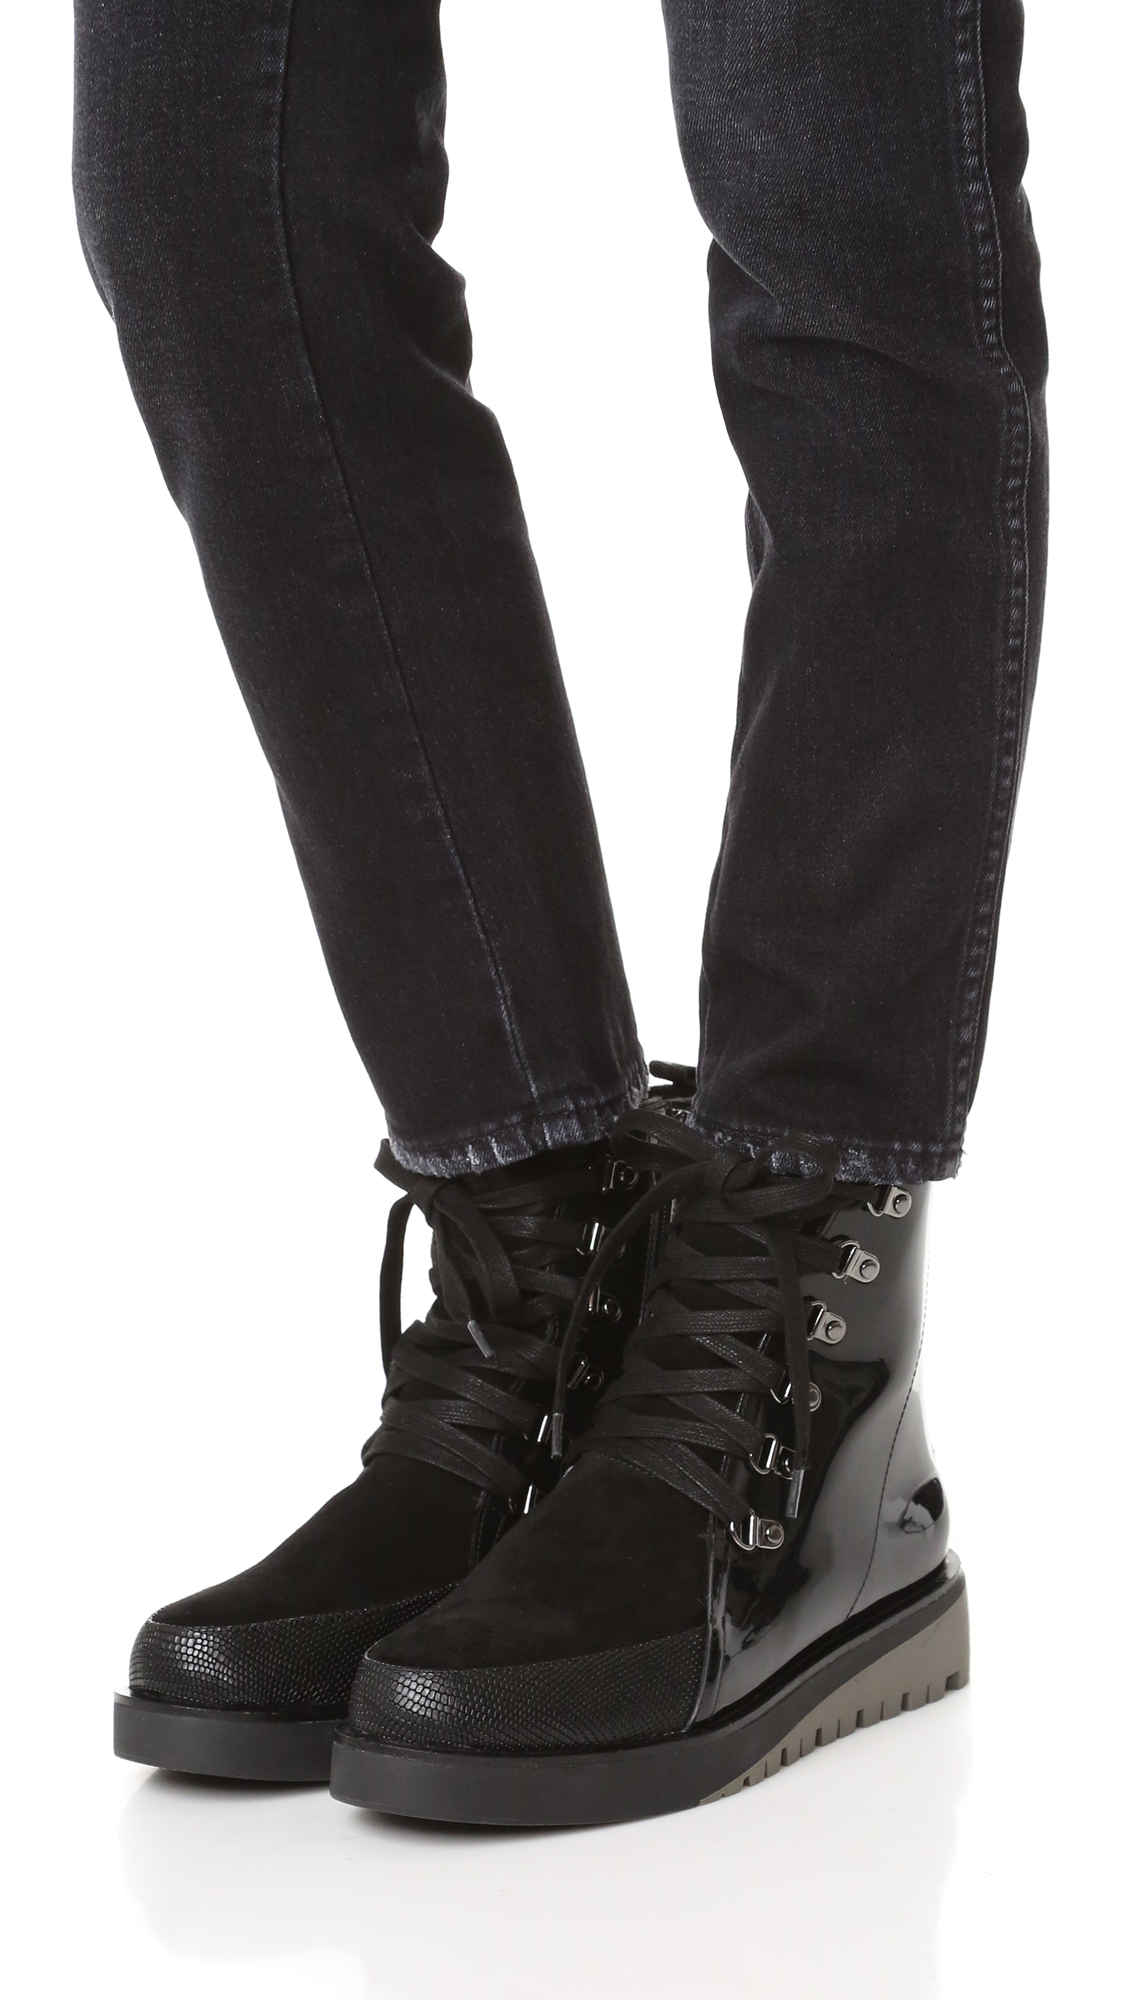 United Nude Hiker Combat Boots in Black